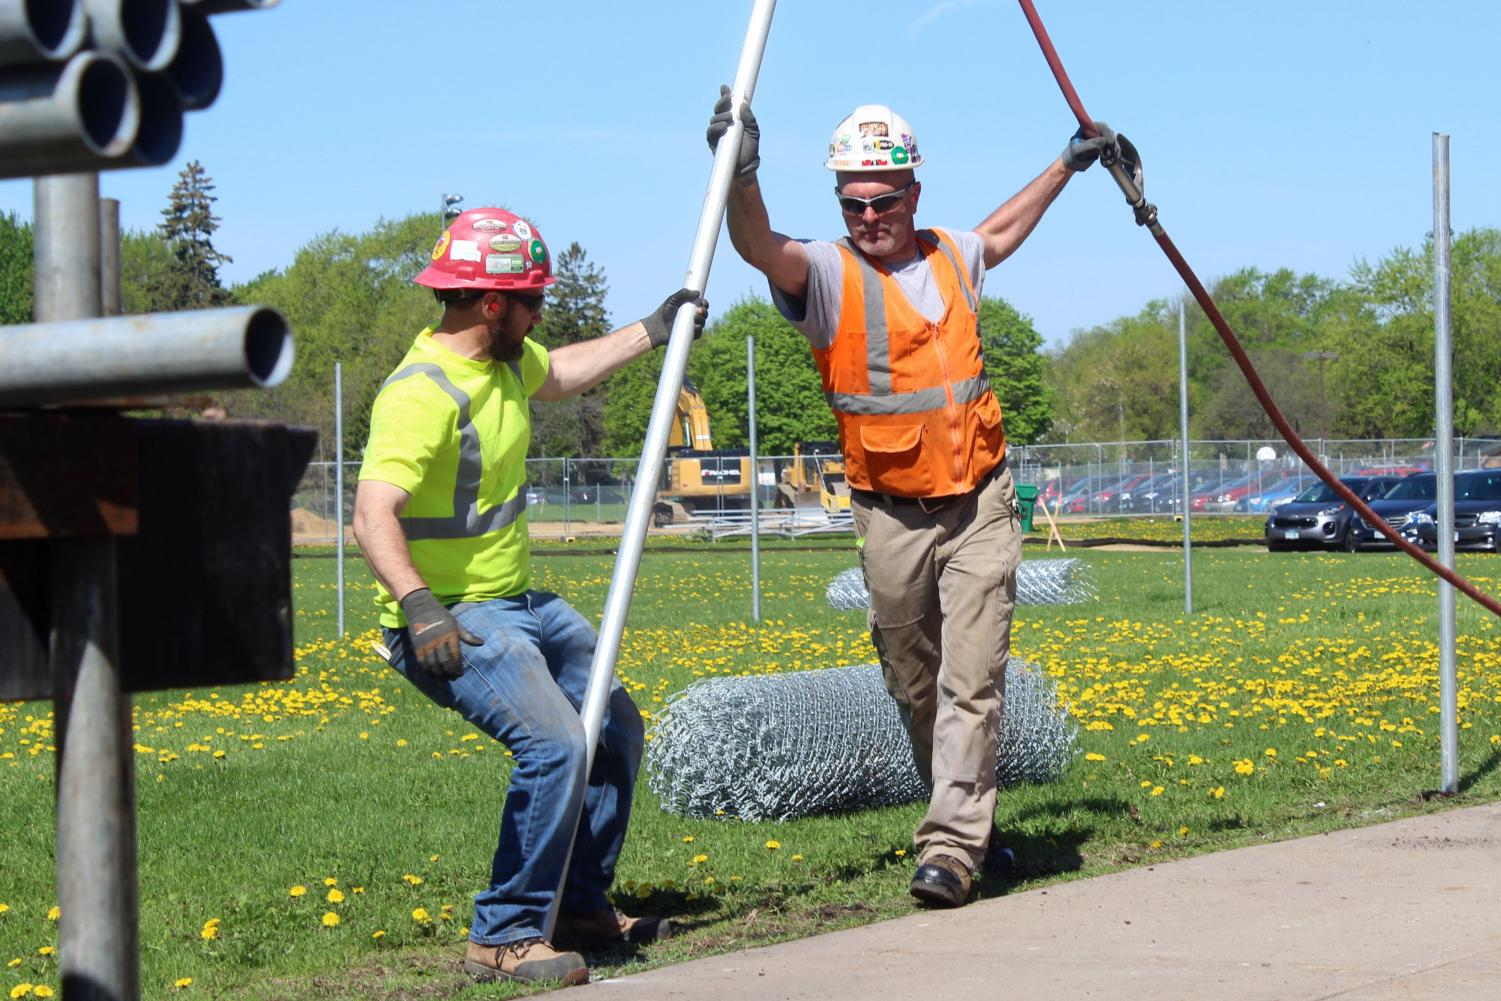 Construction workers place a poll that will be part of the fence surrounding the construction of the new fitness center. The fence went up May 16 in addition to reconstruction of the tennis courts and locker rooms.